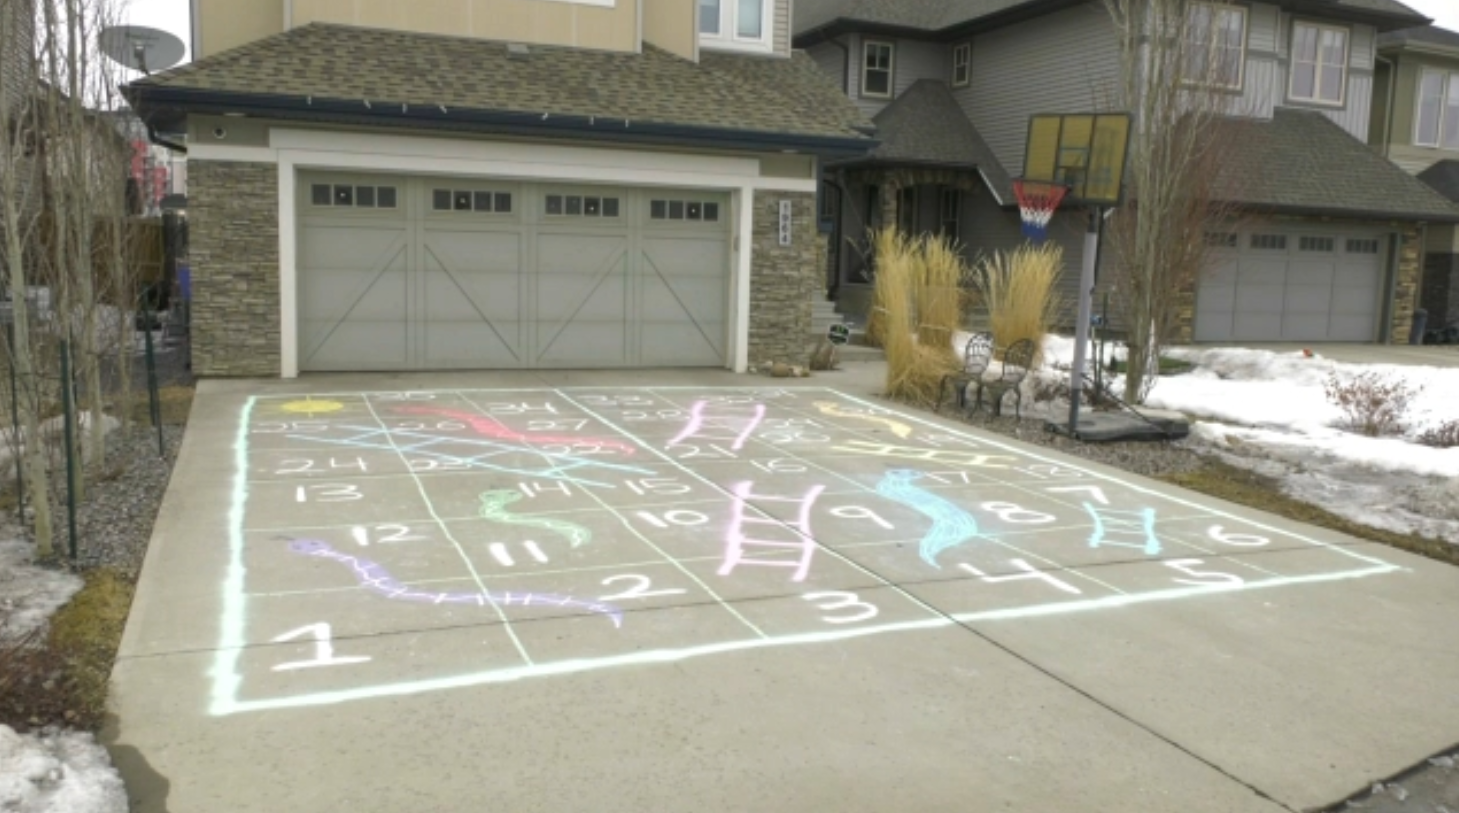 Giant Snakes And Ladders Game Drawn On Edmonton Driveway Ctv News